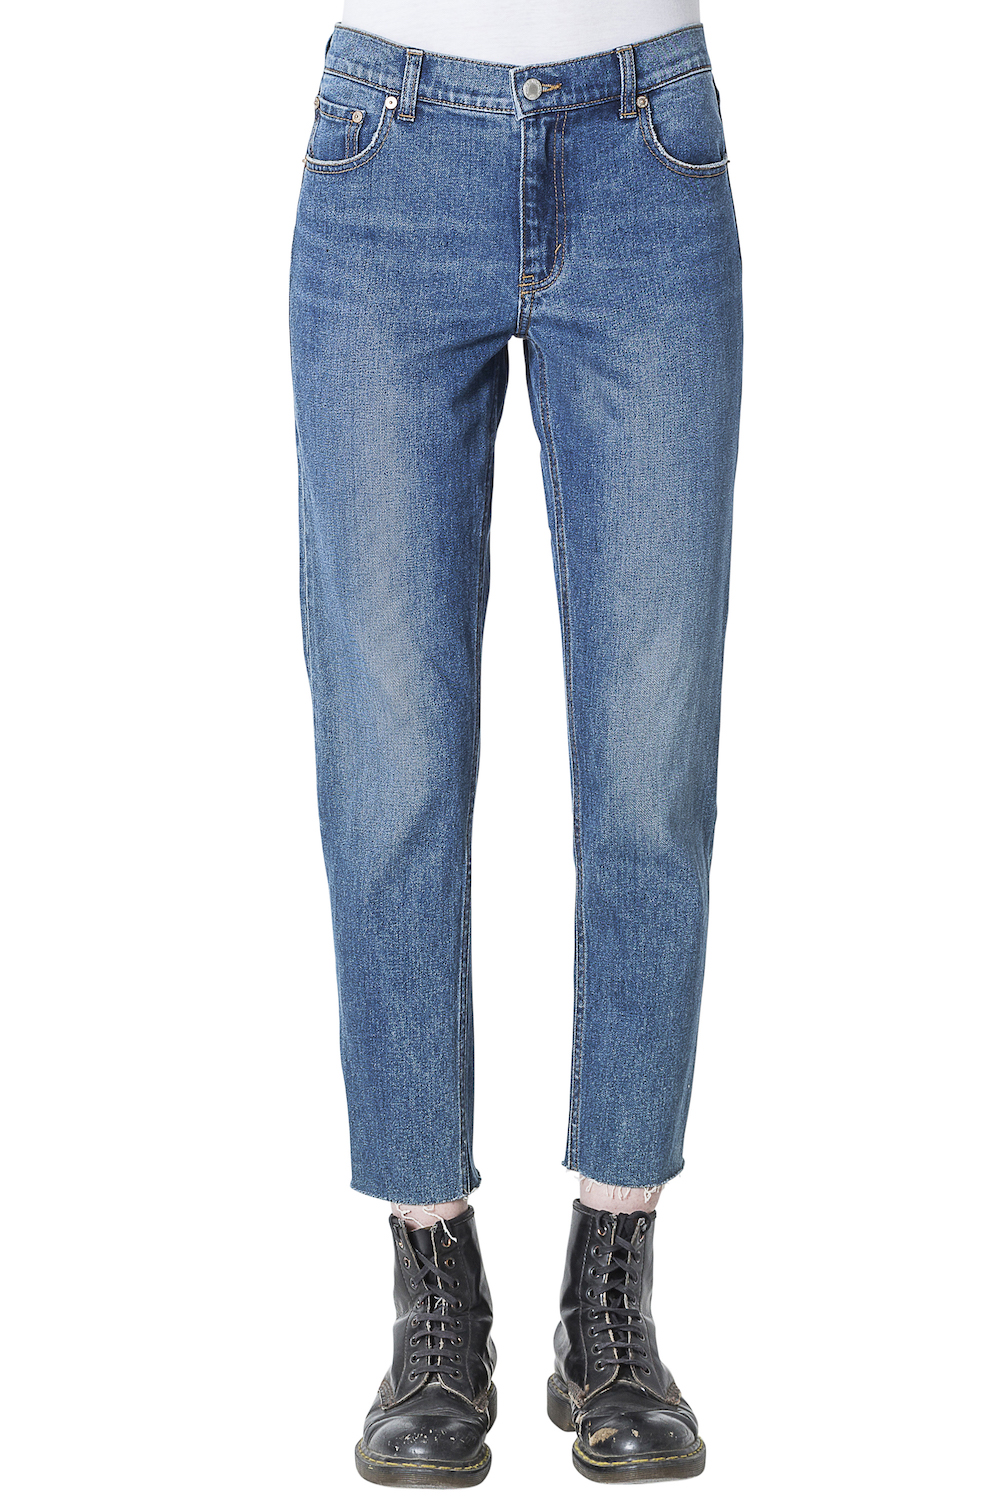 Reasonably Priced Jeans